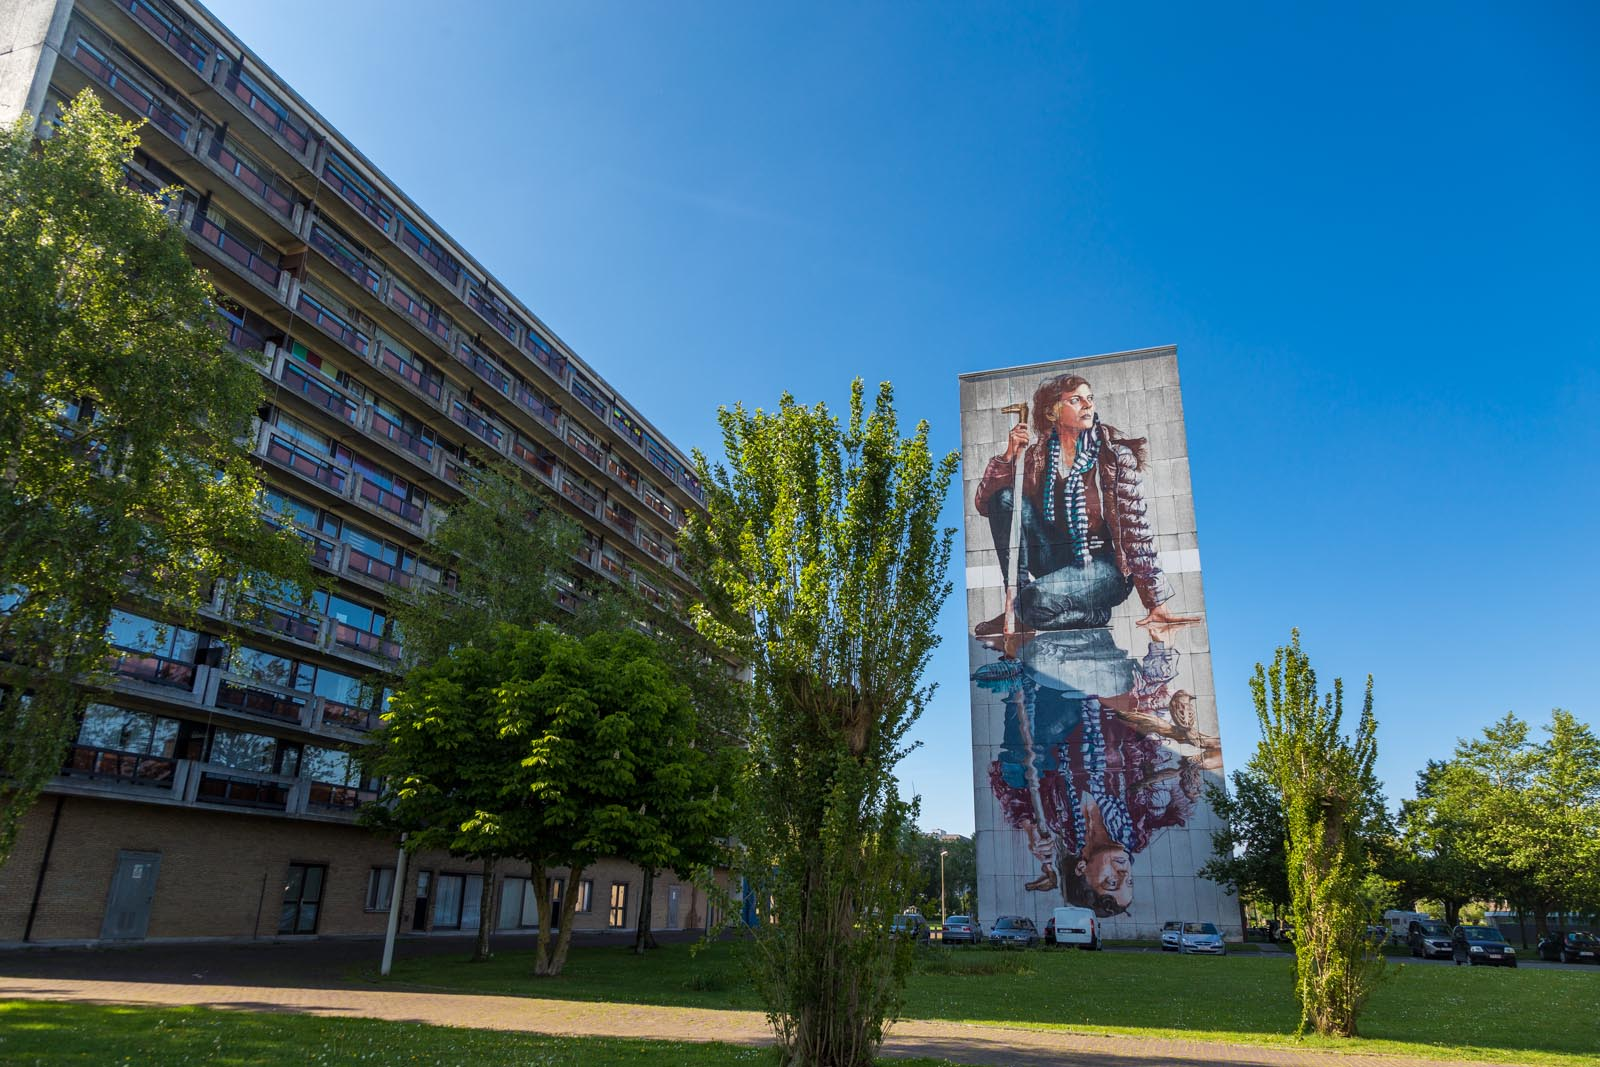 Fintan Magee - The Crystal Ship - Ostende - Mai 2017